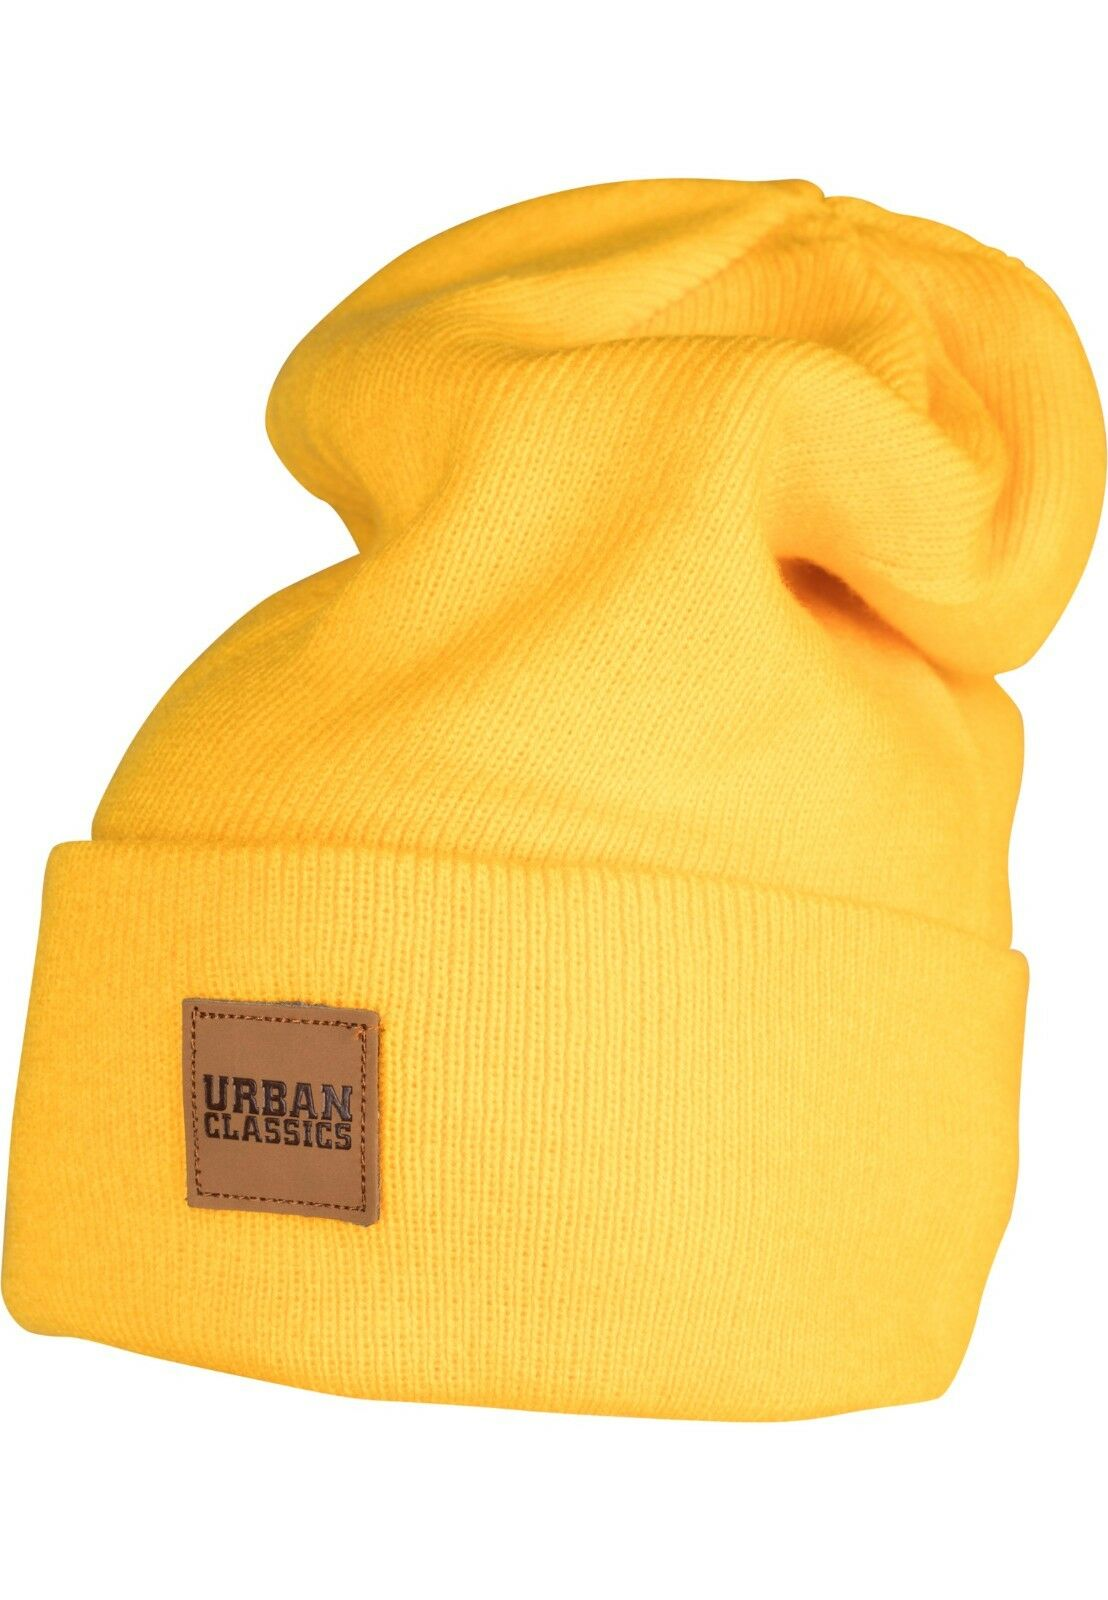 Leatherpatch Long Beanie Hat Urban Classic nNIRUqp